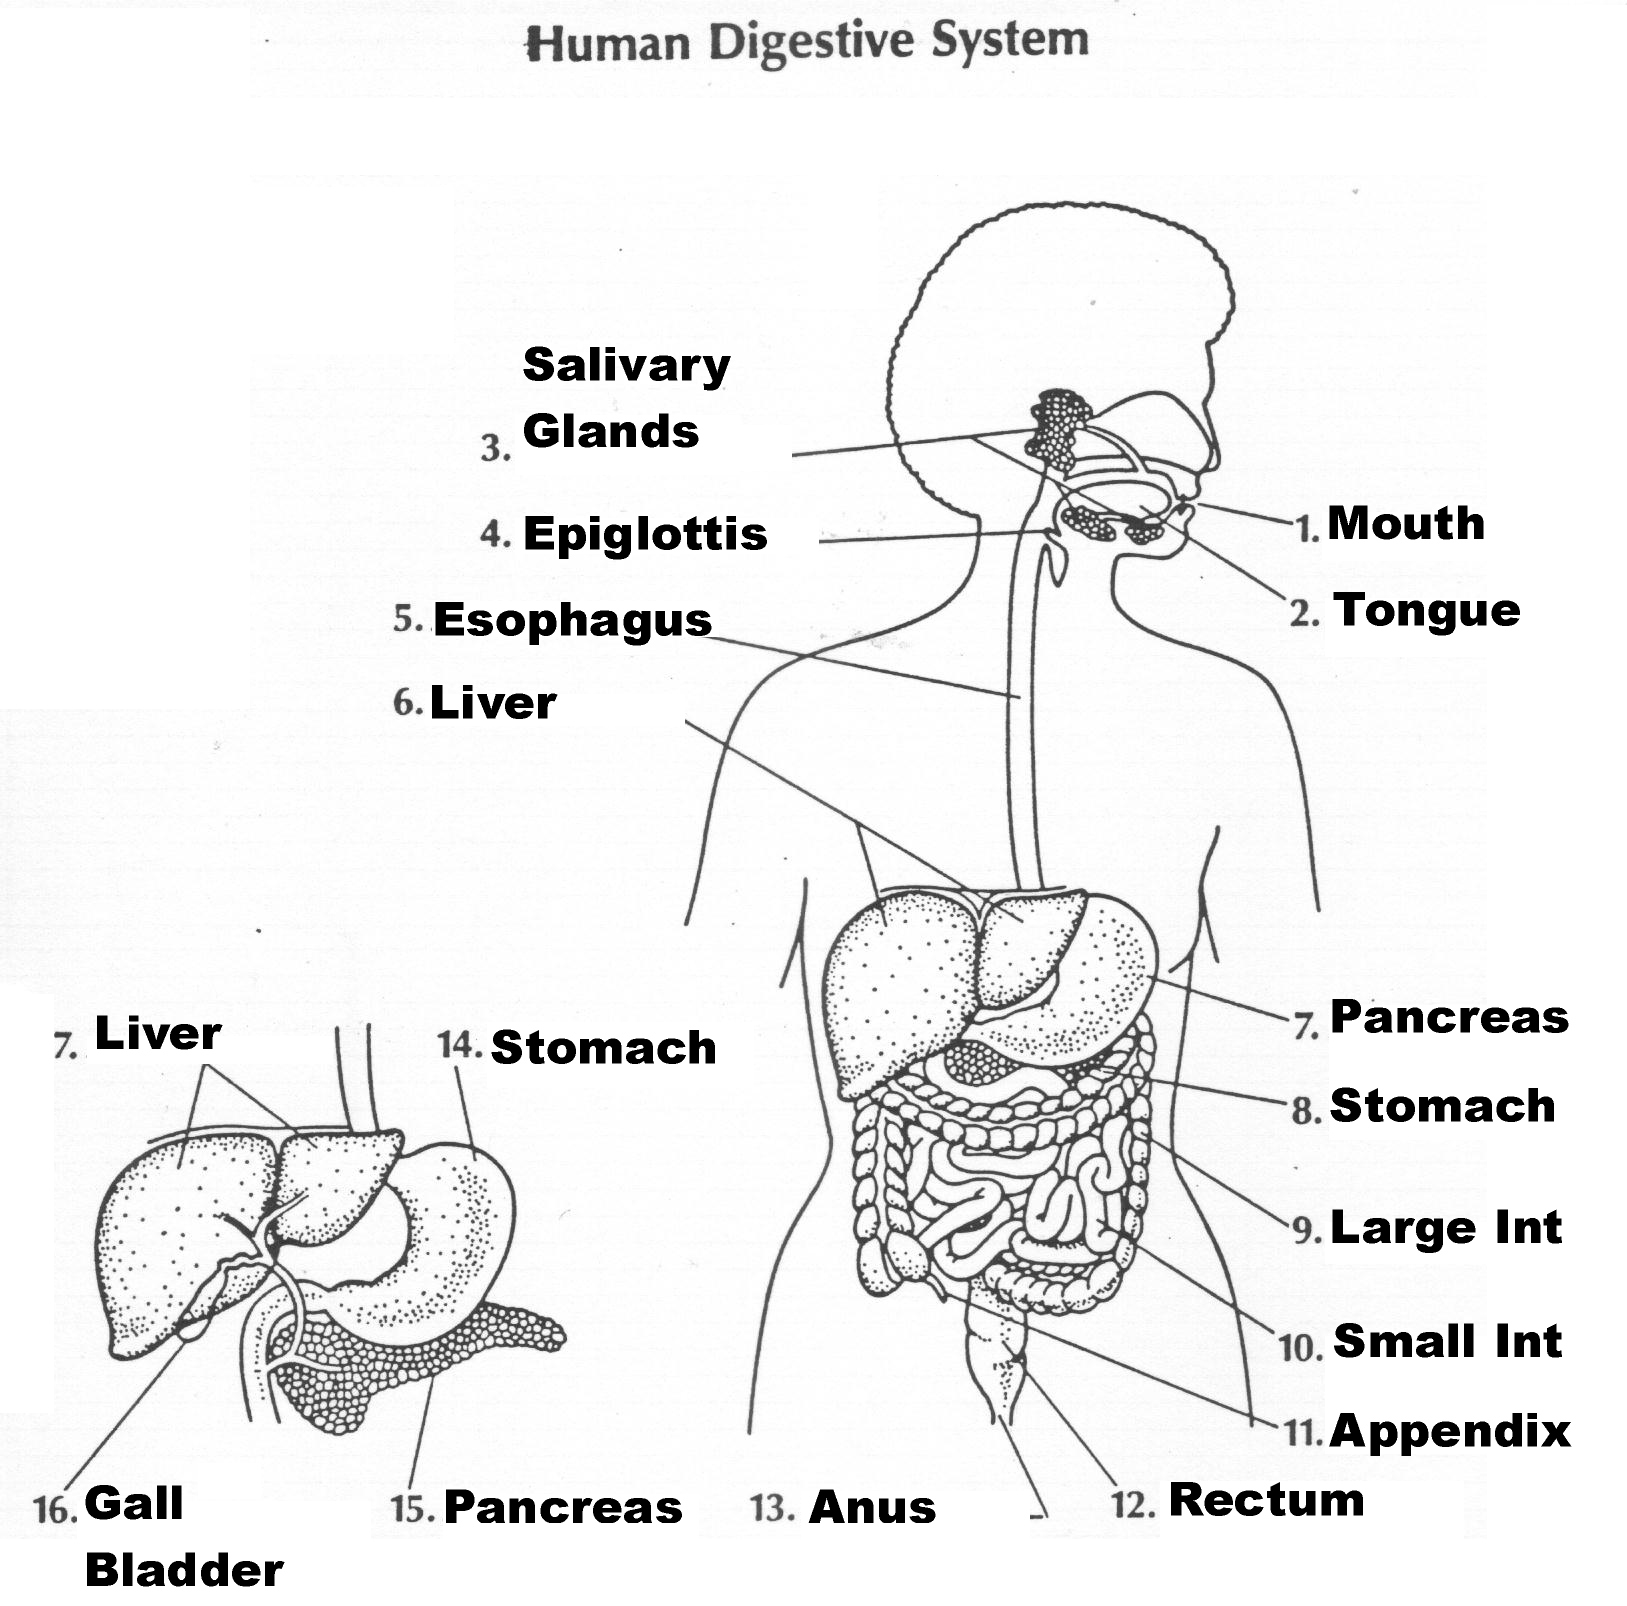 Human Digestive System Diagram Labeled